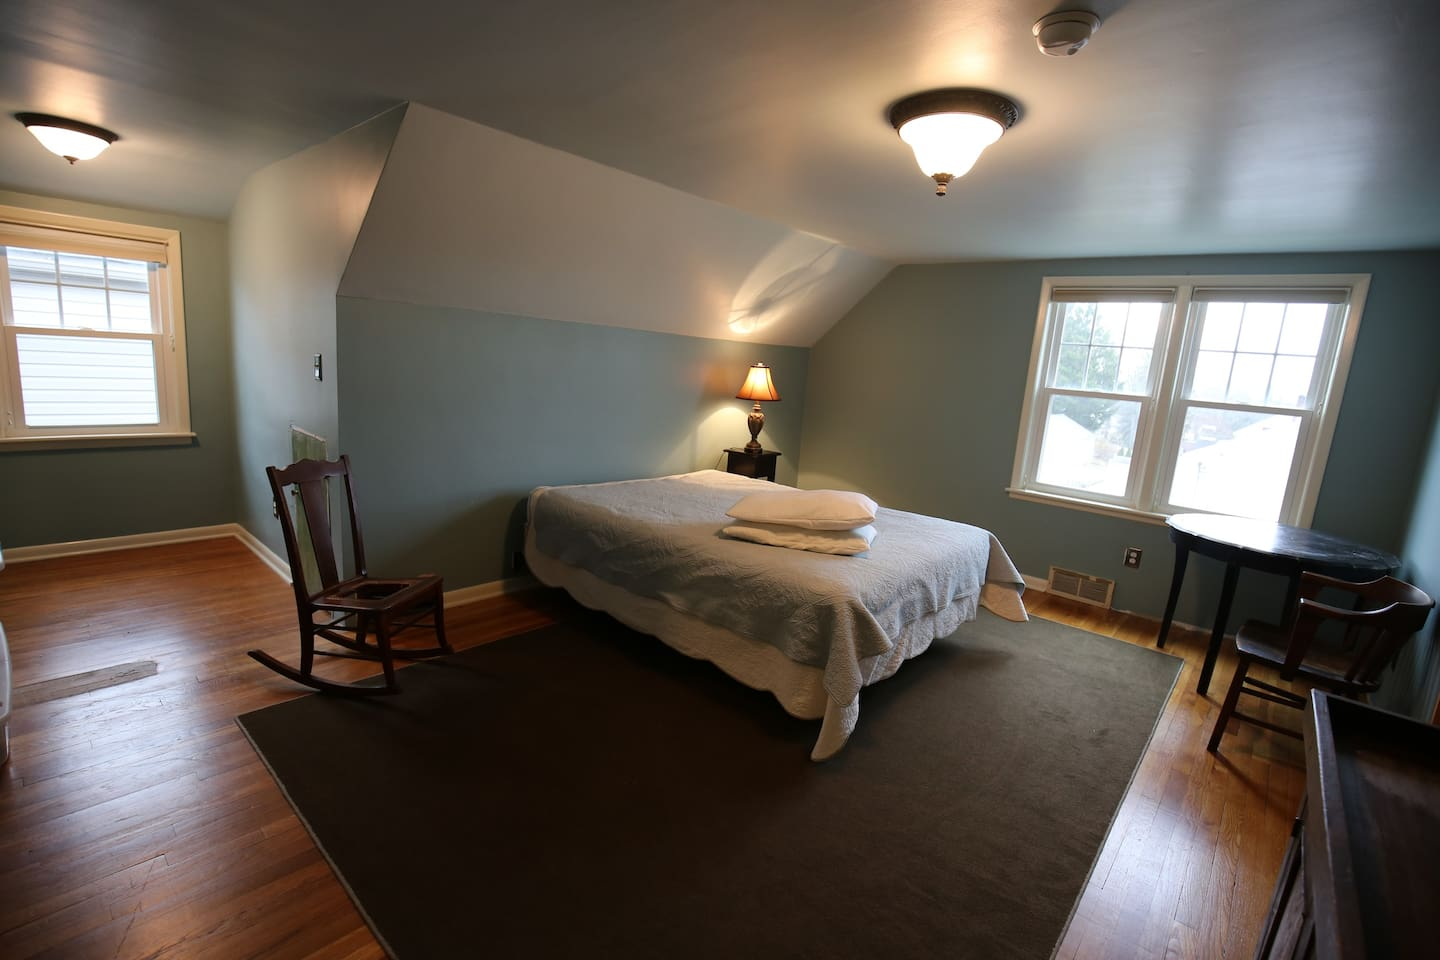 Simple well lit space with queen sized bed,  hangers and hook rack behind the door, a table,  a desk,  a rocker,  and two chairs.